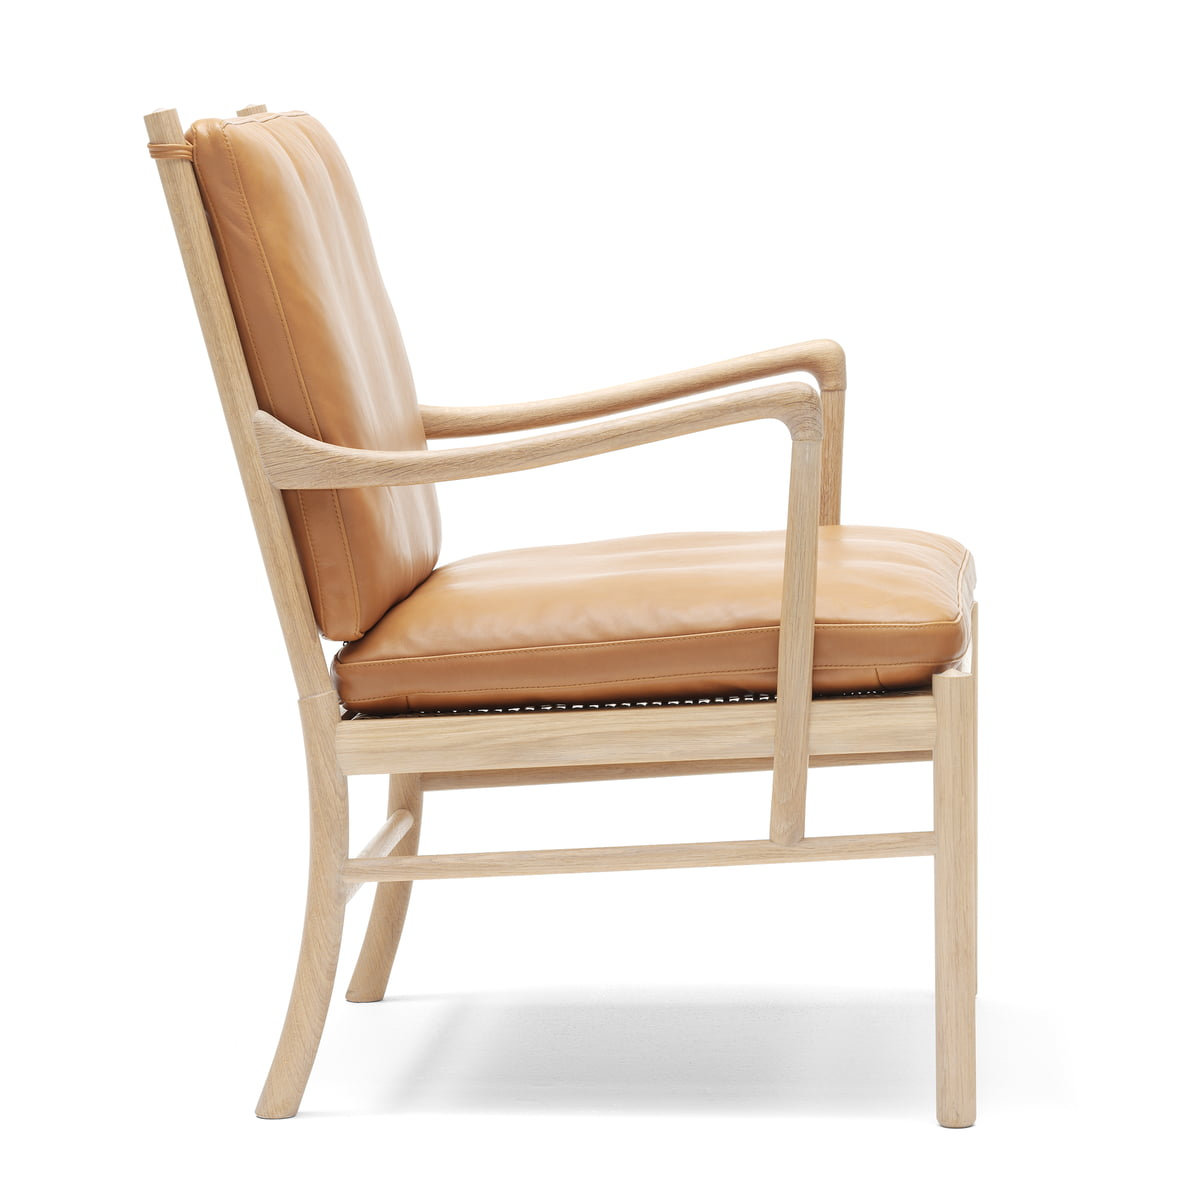 Colonial Chair Ow149 Colonial Chair By Carl Hansen In The Shop